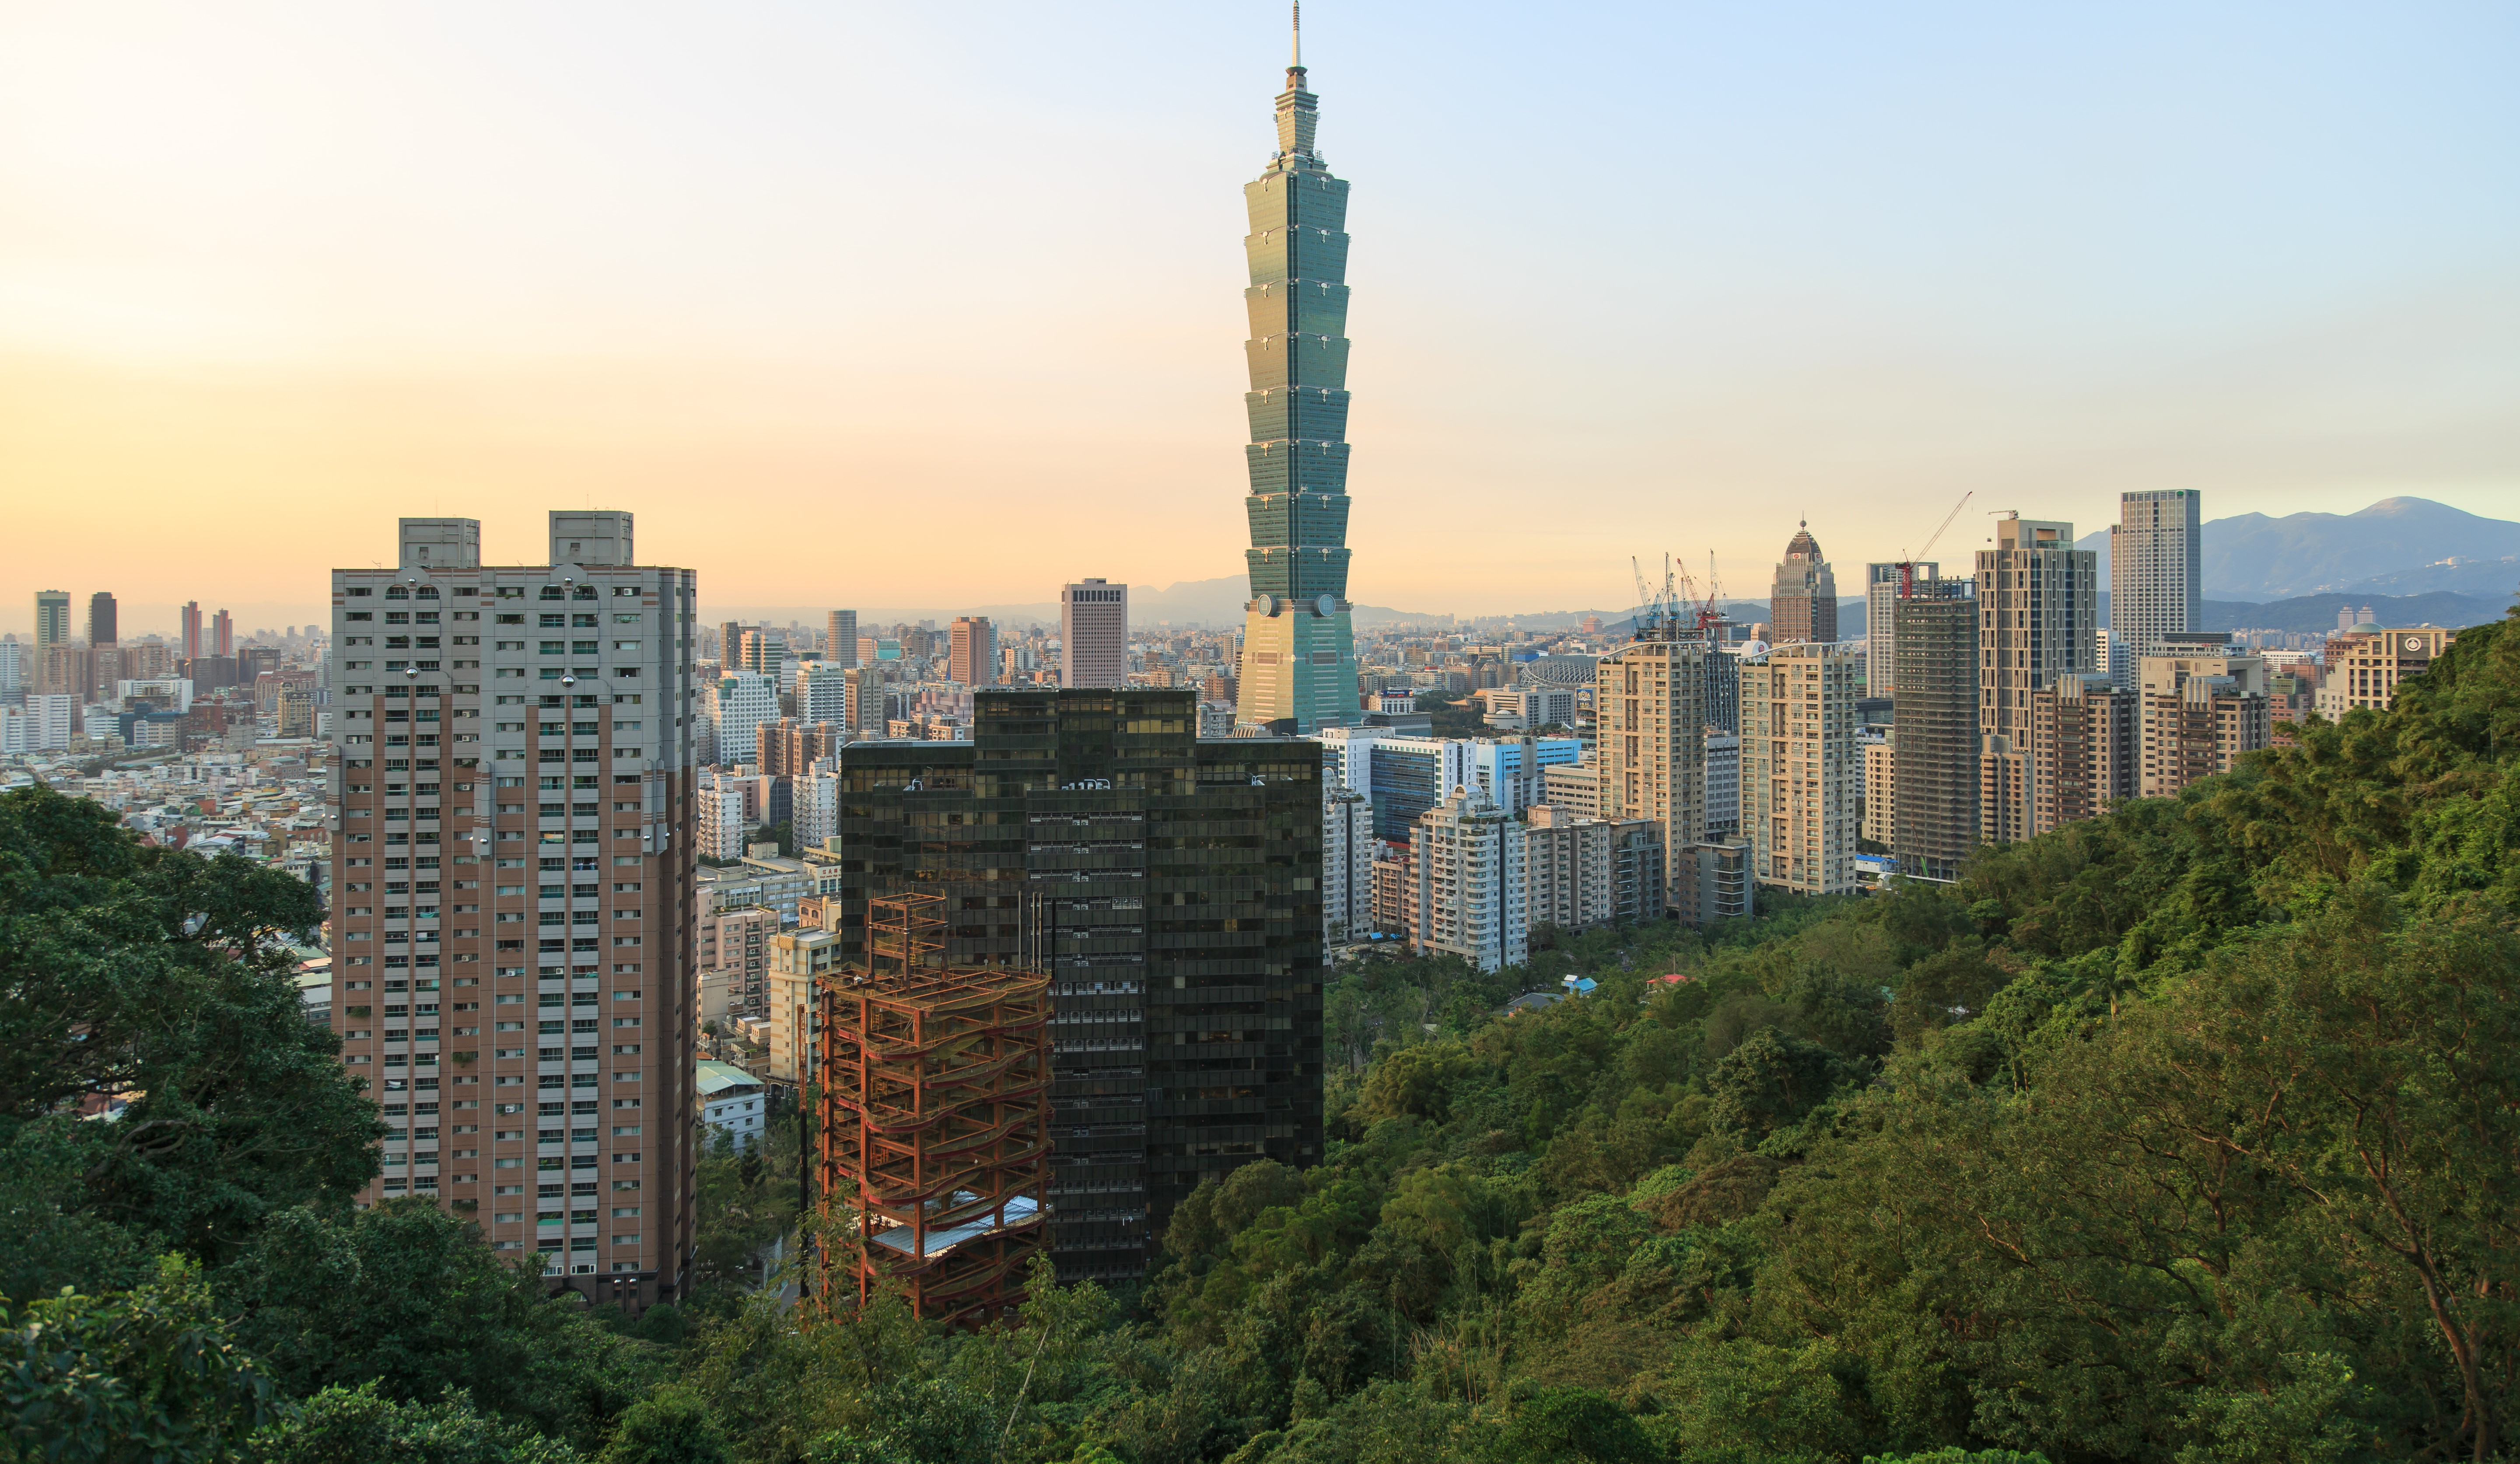 Taipei (Photo by CEphoto, Uwe Aranas Creative Commons licence)